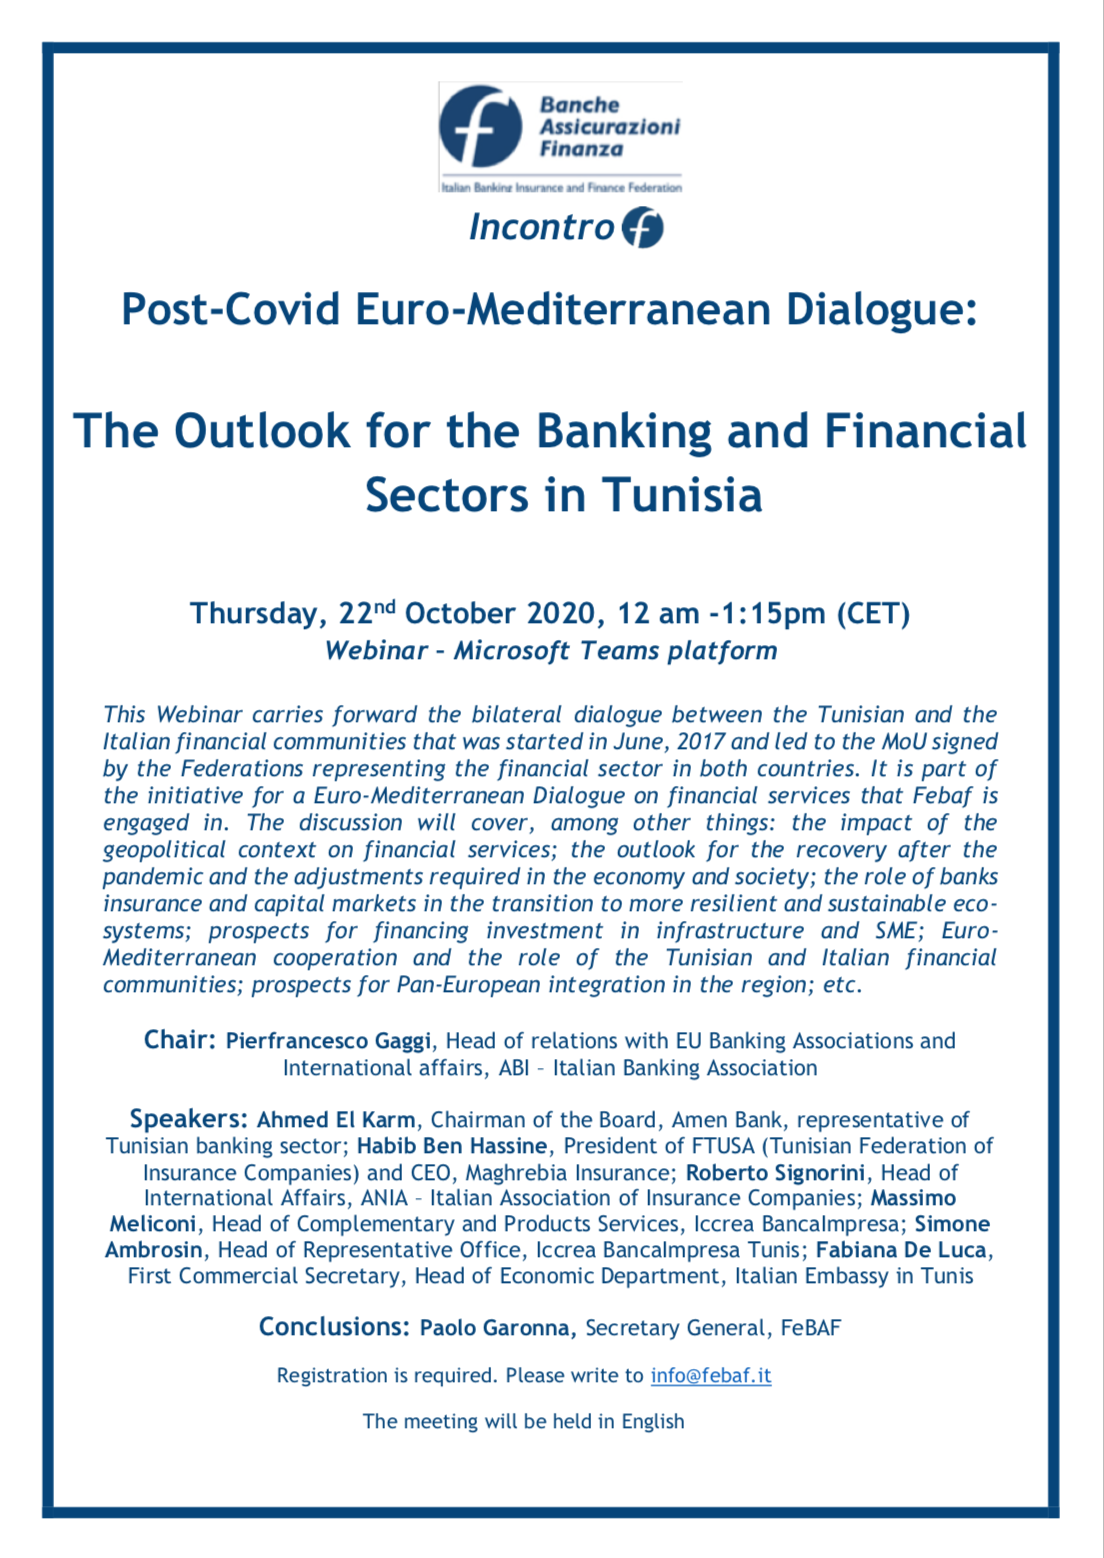 Post-Covid Euro-Mediterranean Dialogue: The Outlook for the Banking and Financial Sectors in Tunisia